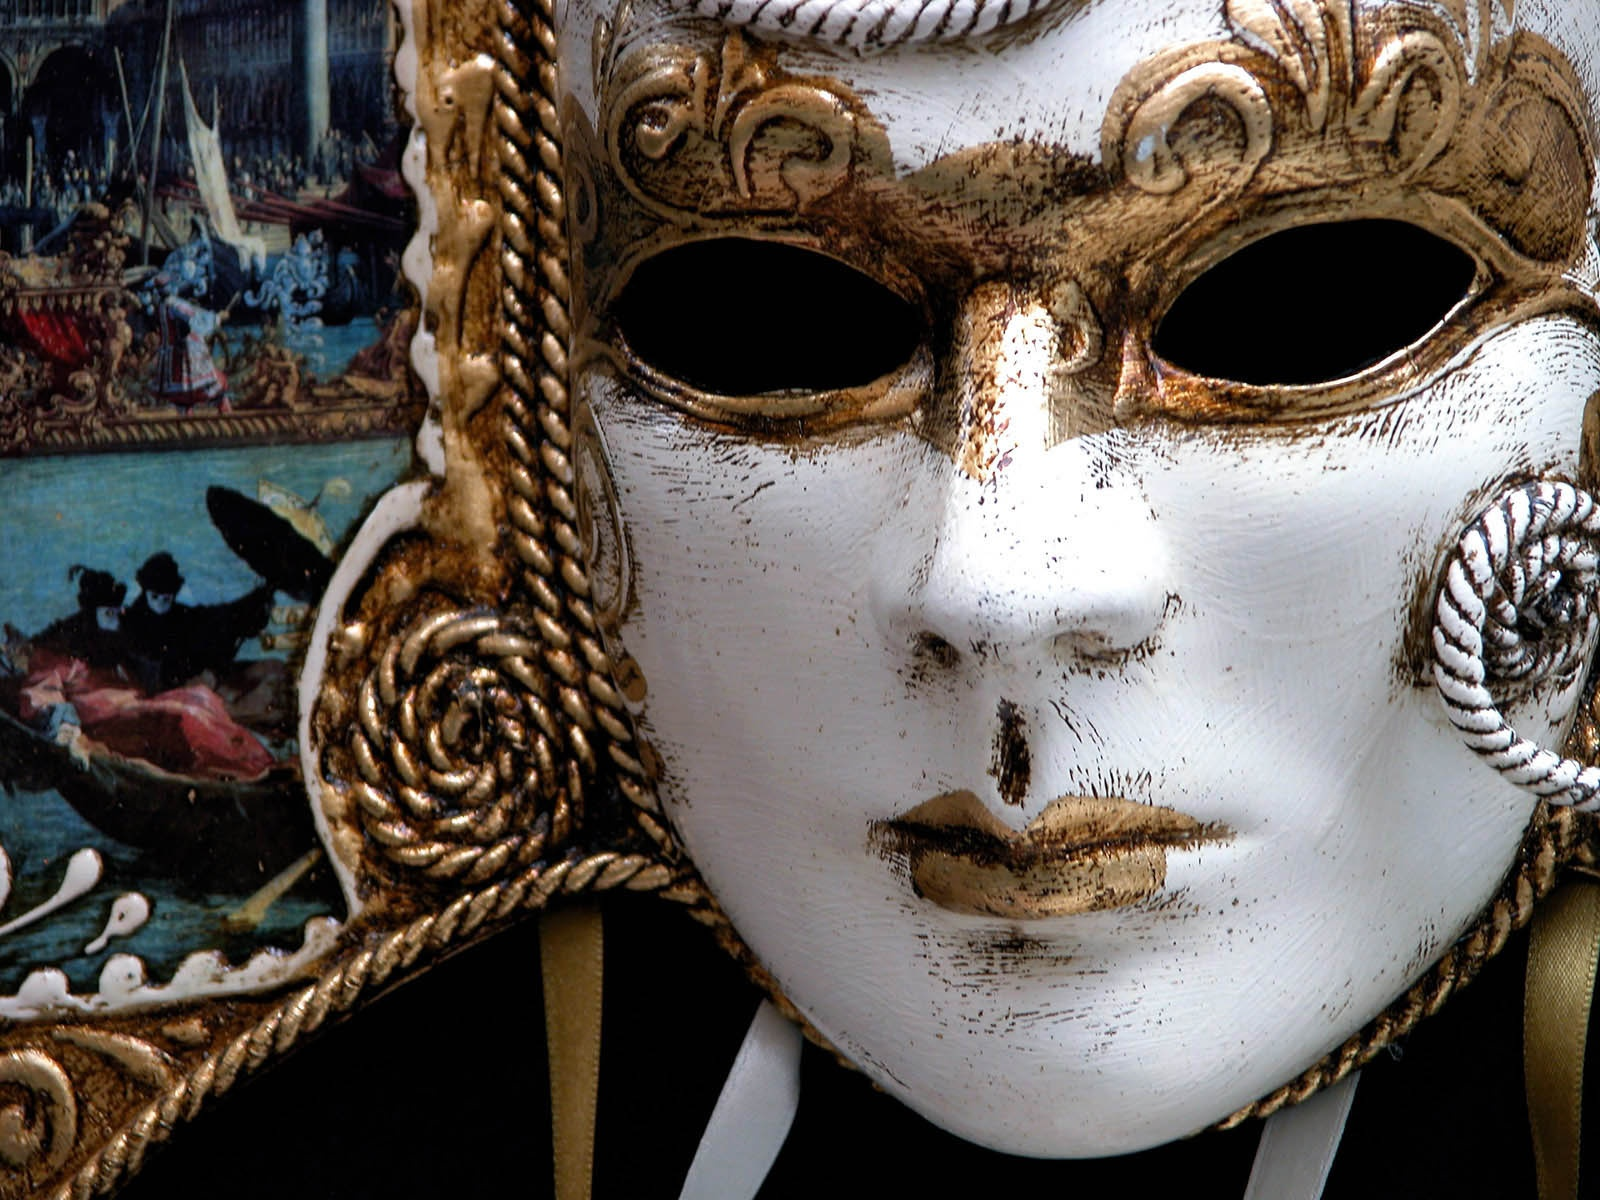 New Masquerade Mask High Defination Wallpapers   All HD 1600x1200